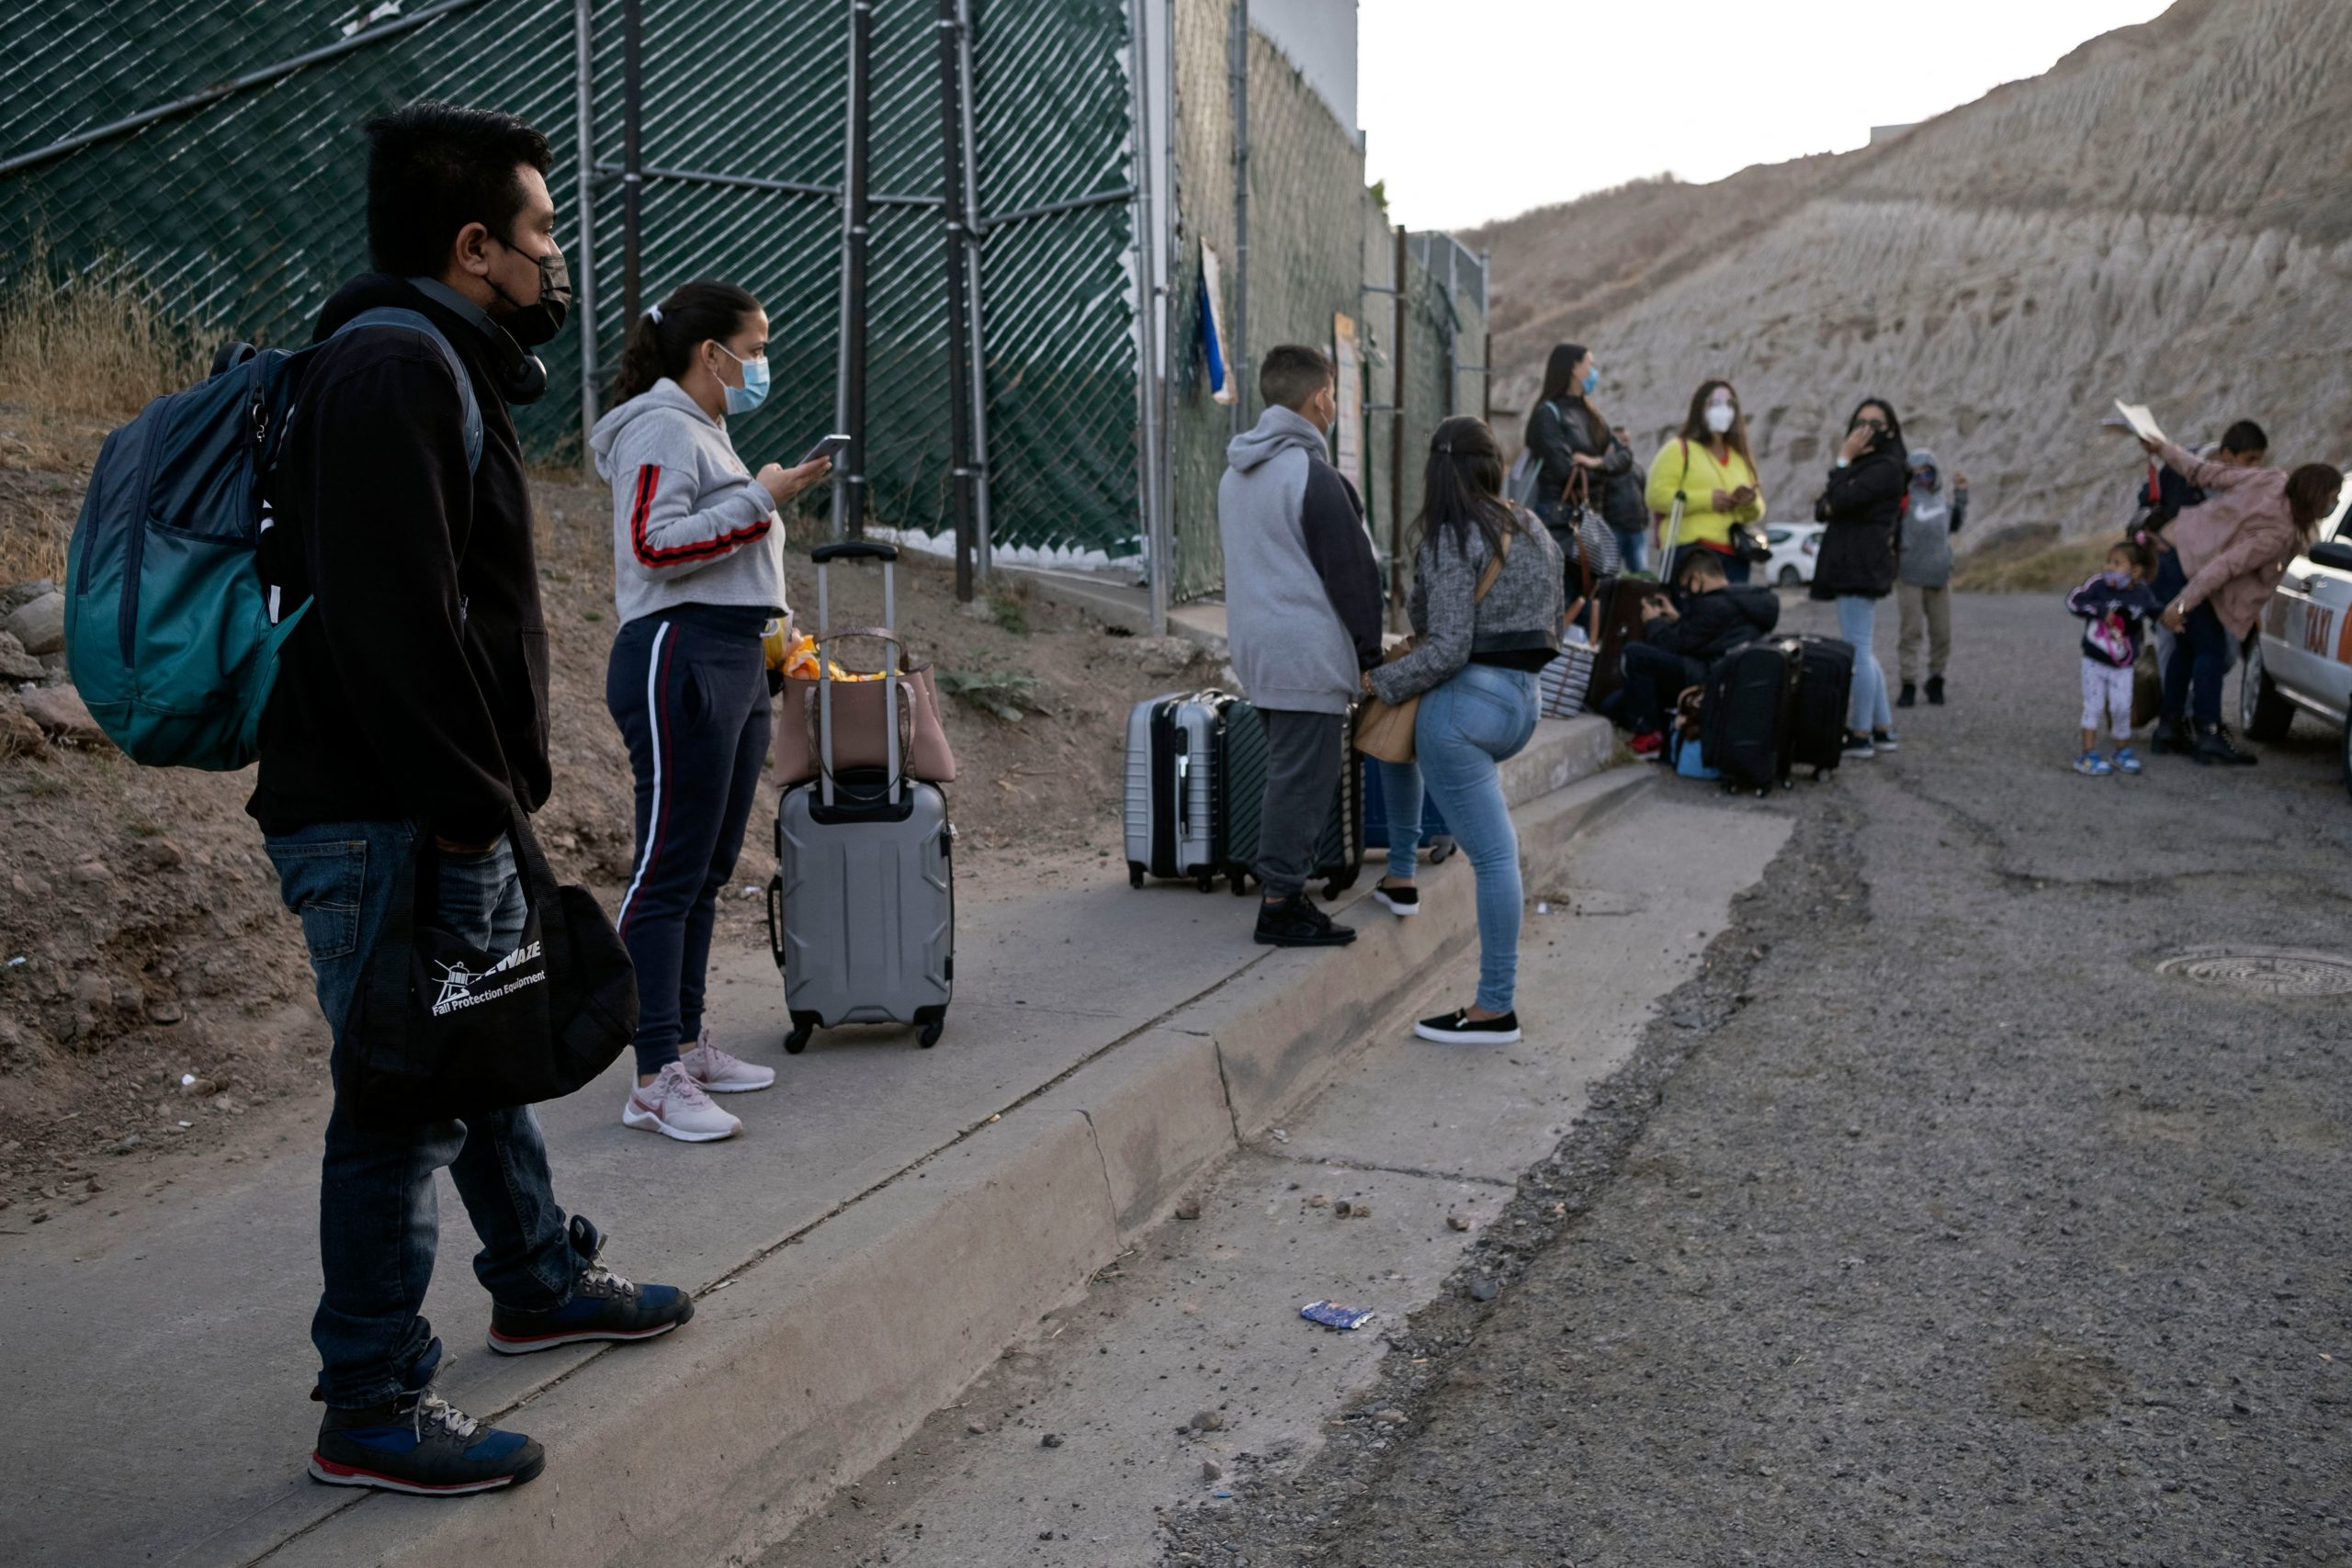 Cruz Estuardo Tunpumay (L), a 32 year-old migrant from Guatemala, stands a with other asylum seekers while waiting to enter a Mexican Government facility they will be examined before being taken to the border by UNHCR and Mexican authorities in Tijuana, Baja California state, Mexico on May 20, 2021. (Photo by Guillermo Arias / AFP) (Photo by GUILLERMO ARIAS/AFP via Getty Images)